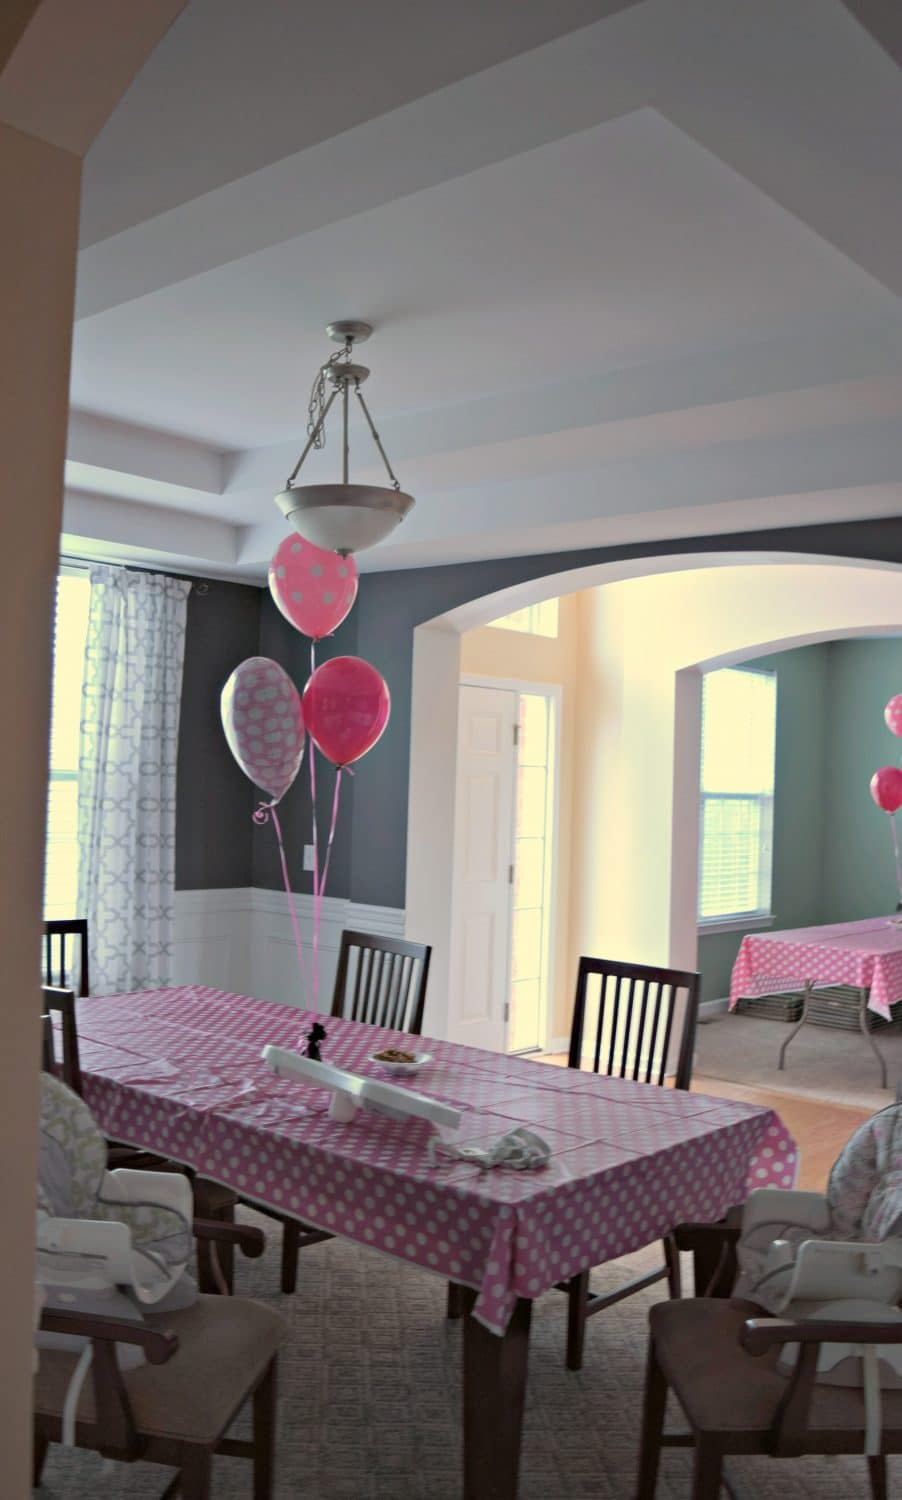 Minnie Mouse Birthday Party ideas! See how we used Minnie at our little girls' birthday party!